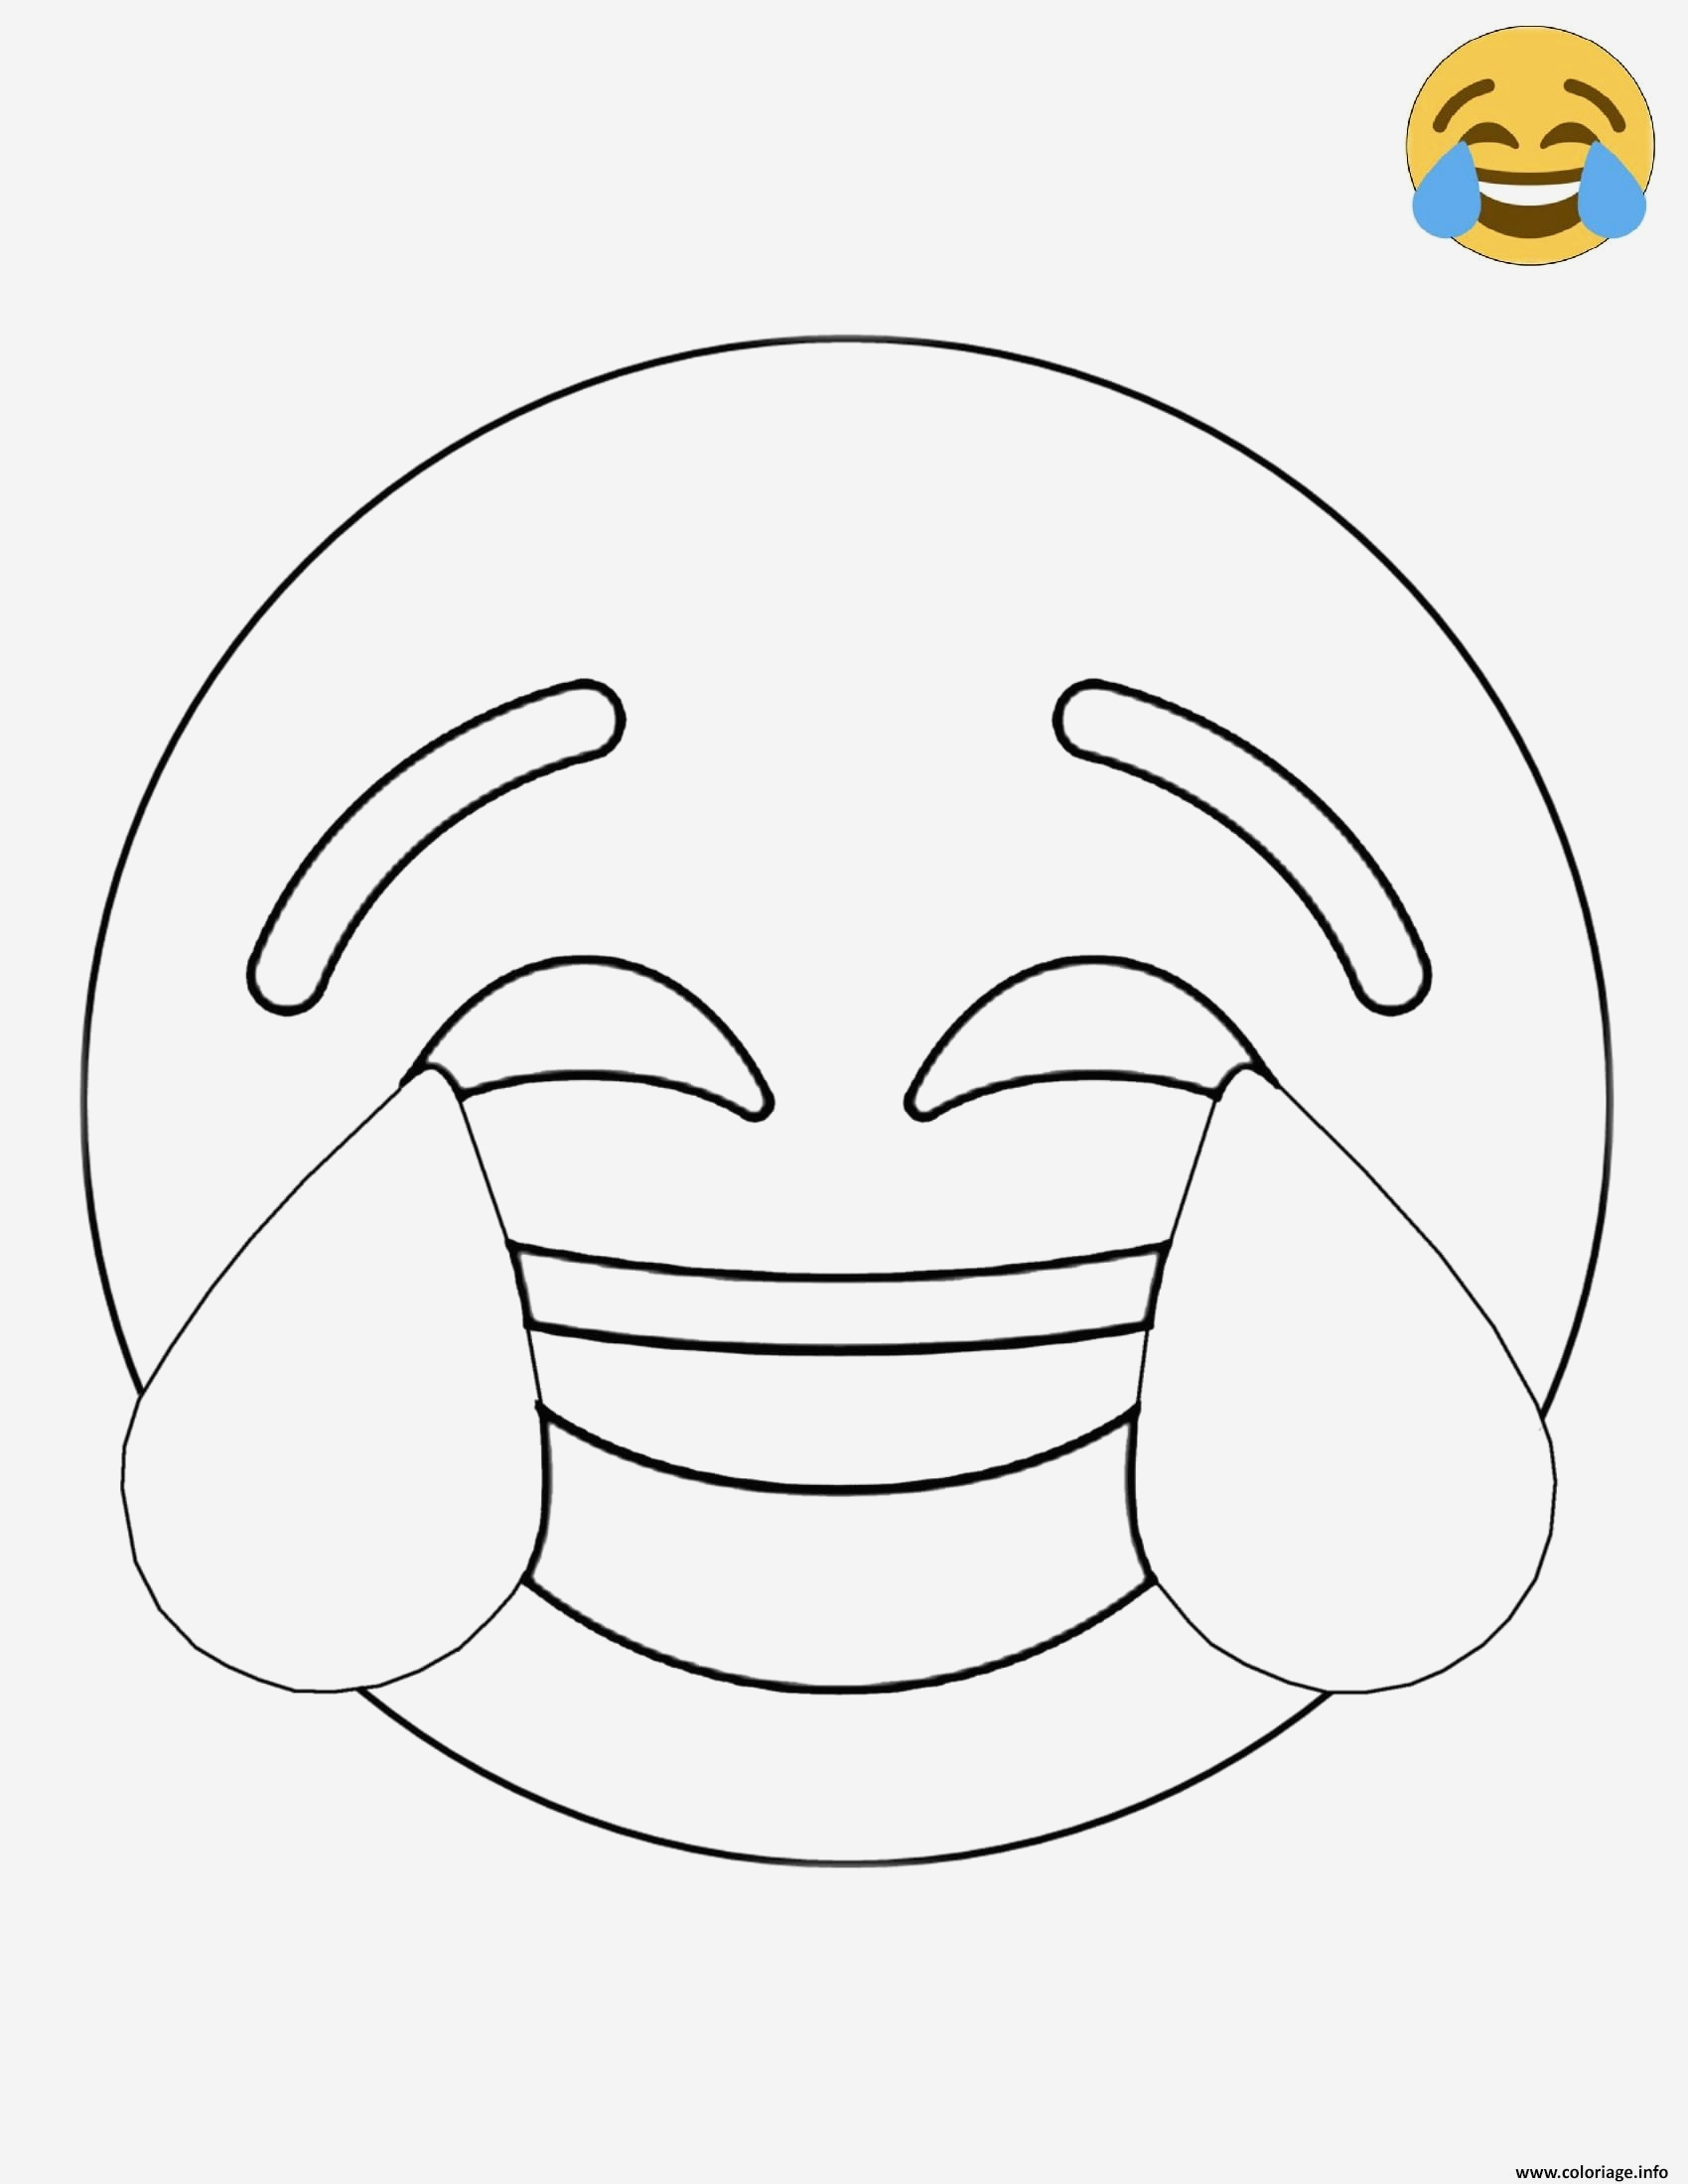 Coloriage Smiley à Imprimer Gratuit Best Of Coloriage Twitter Crying Laughing Emoji Dessin Of 25 Coloriage Smiley à Imprimer Gratuit